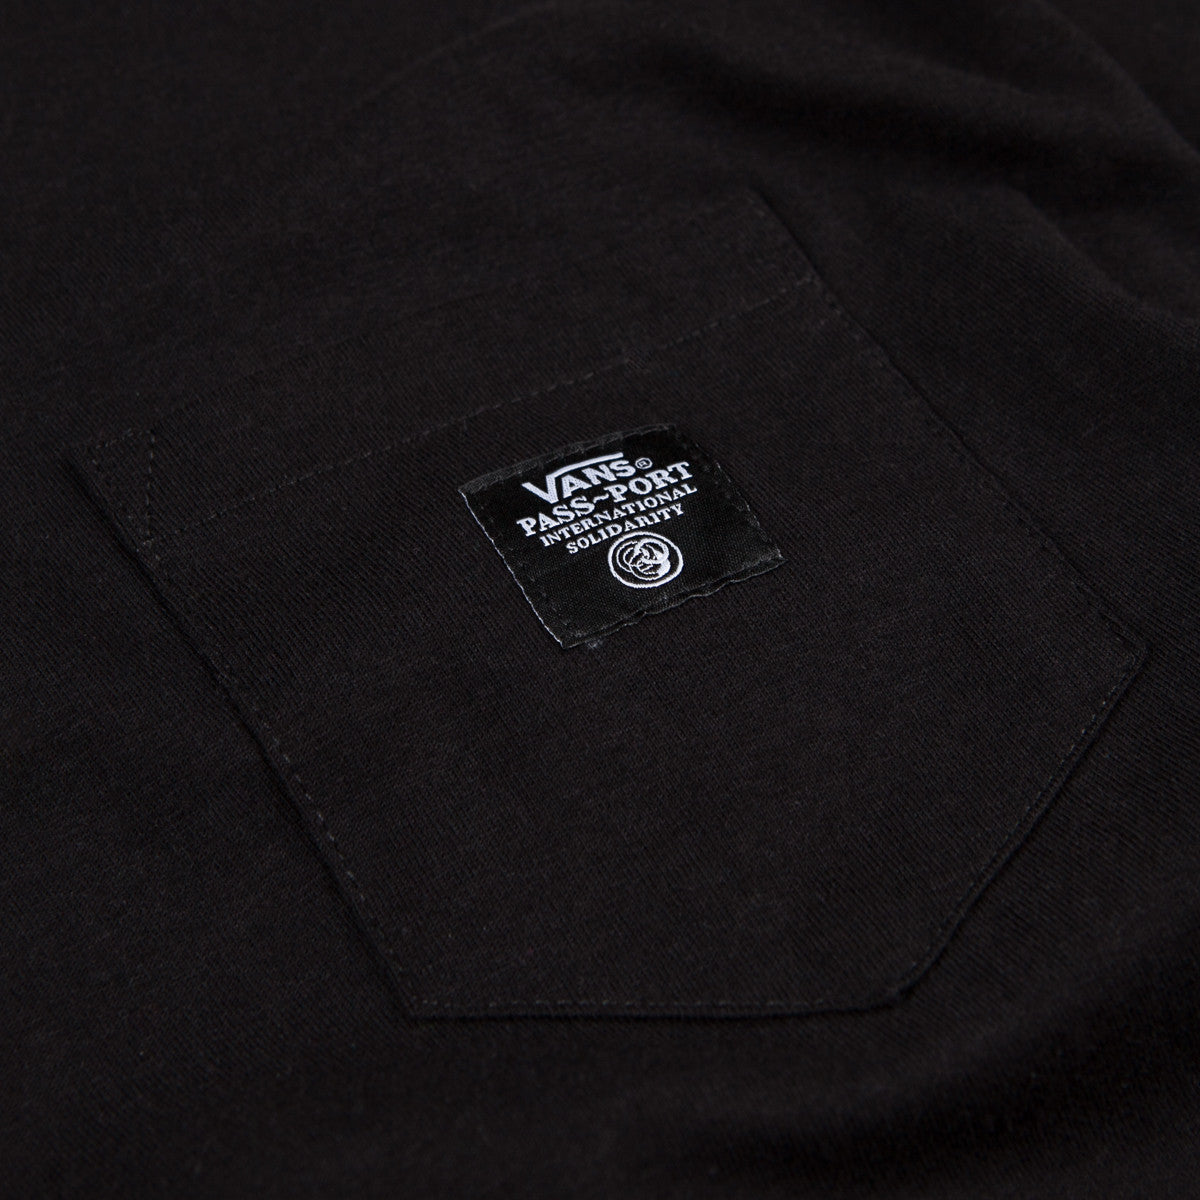 Vans x Pass Port Pocket T-Shirt - Black